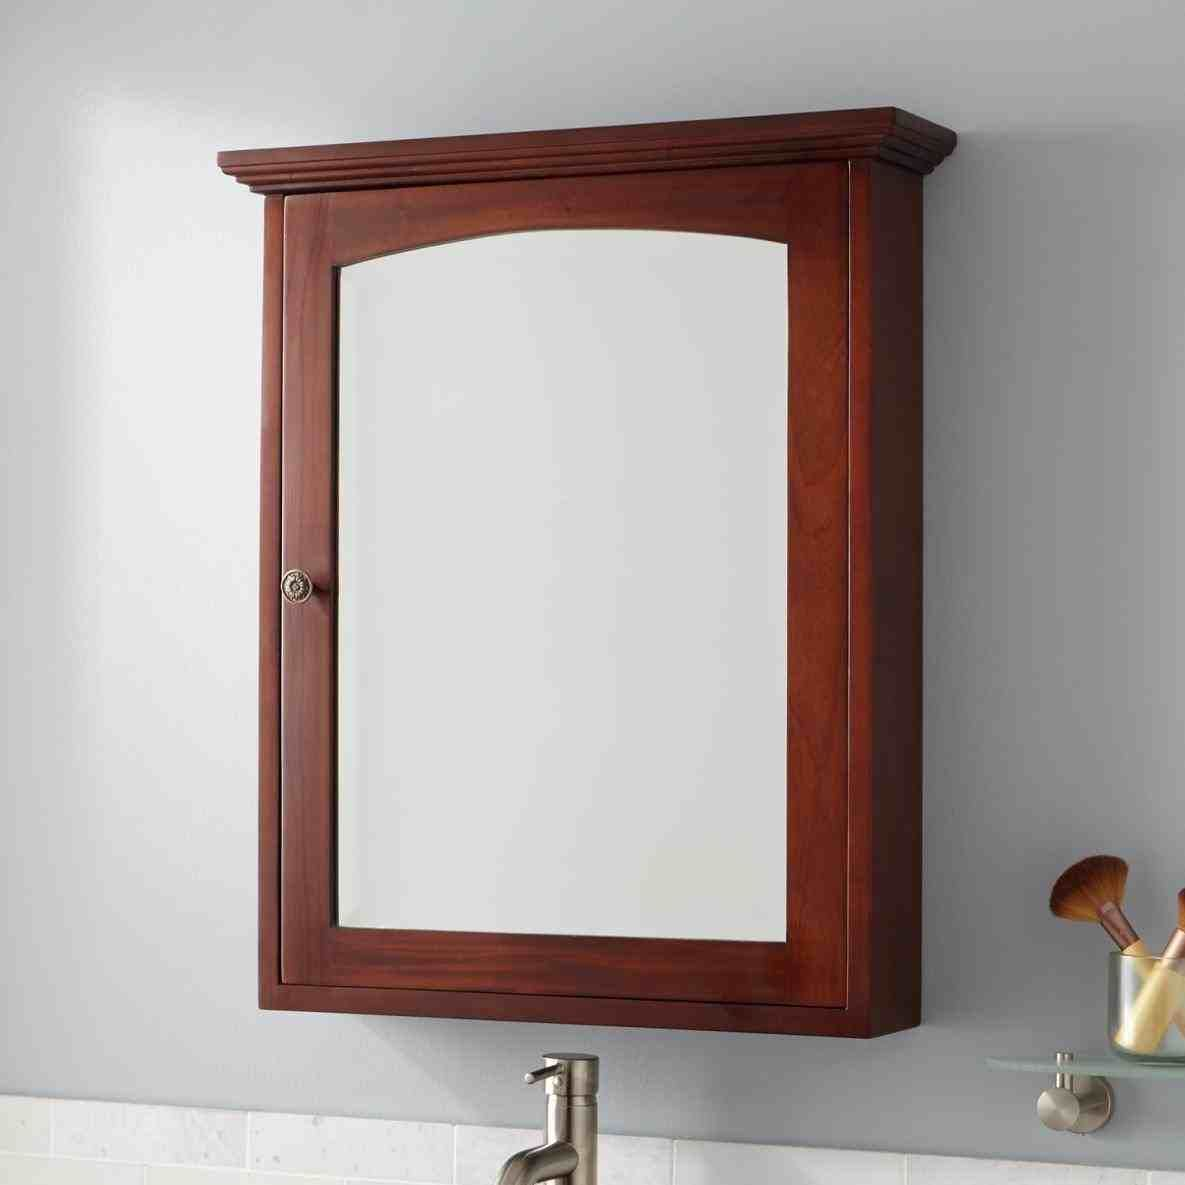 New Post bathroom medicine cabinet hinges | LivingRooms | Pinterest ...